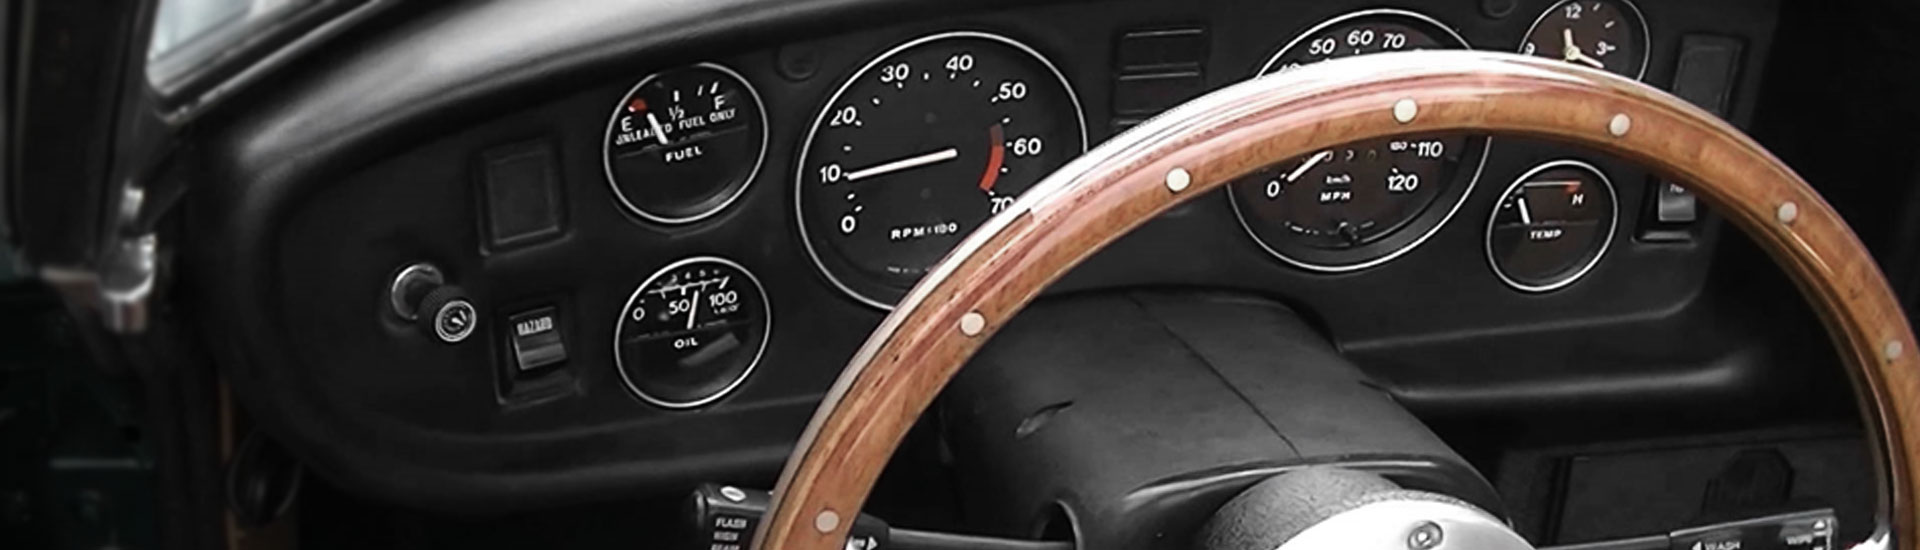 MG MGB Dash Kits | Custom MG MGB Dash Kit